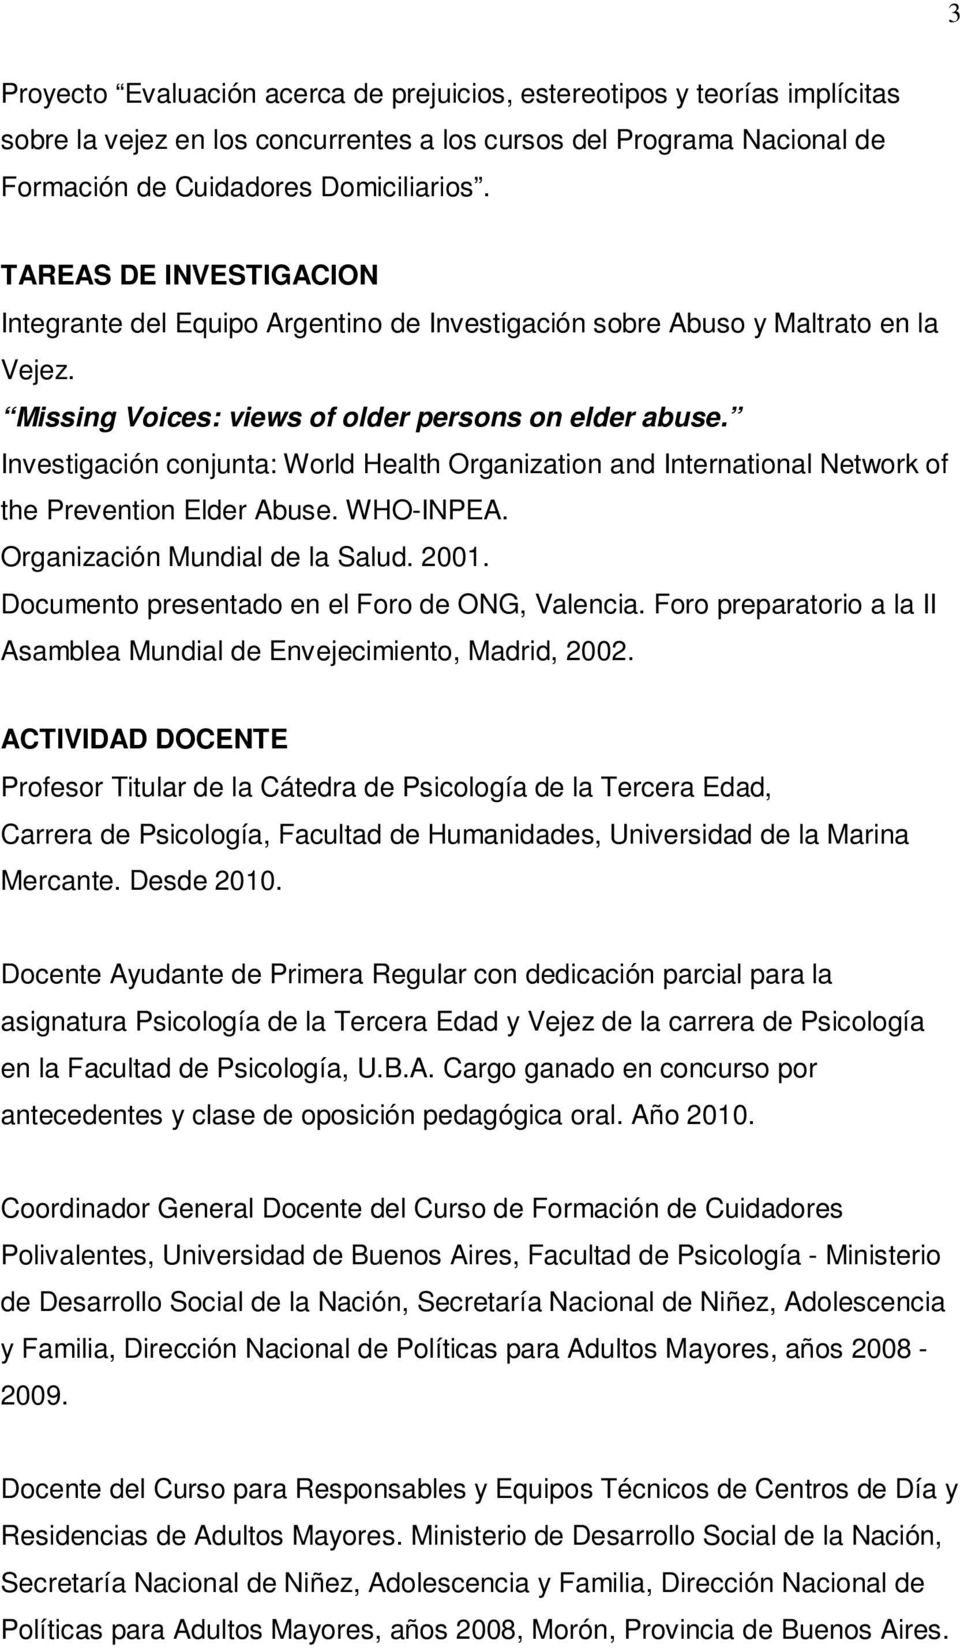 Investigación conjunta: World Health Organization and International Network of the Prevention Elder Abuse. WHO-INPEA. Organización Mundial de la Salud. 2001.